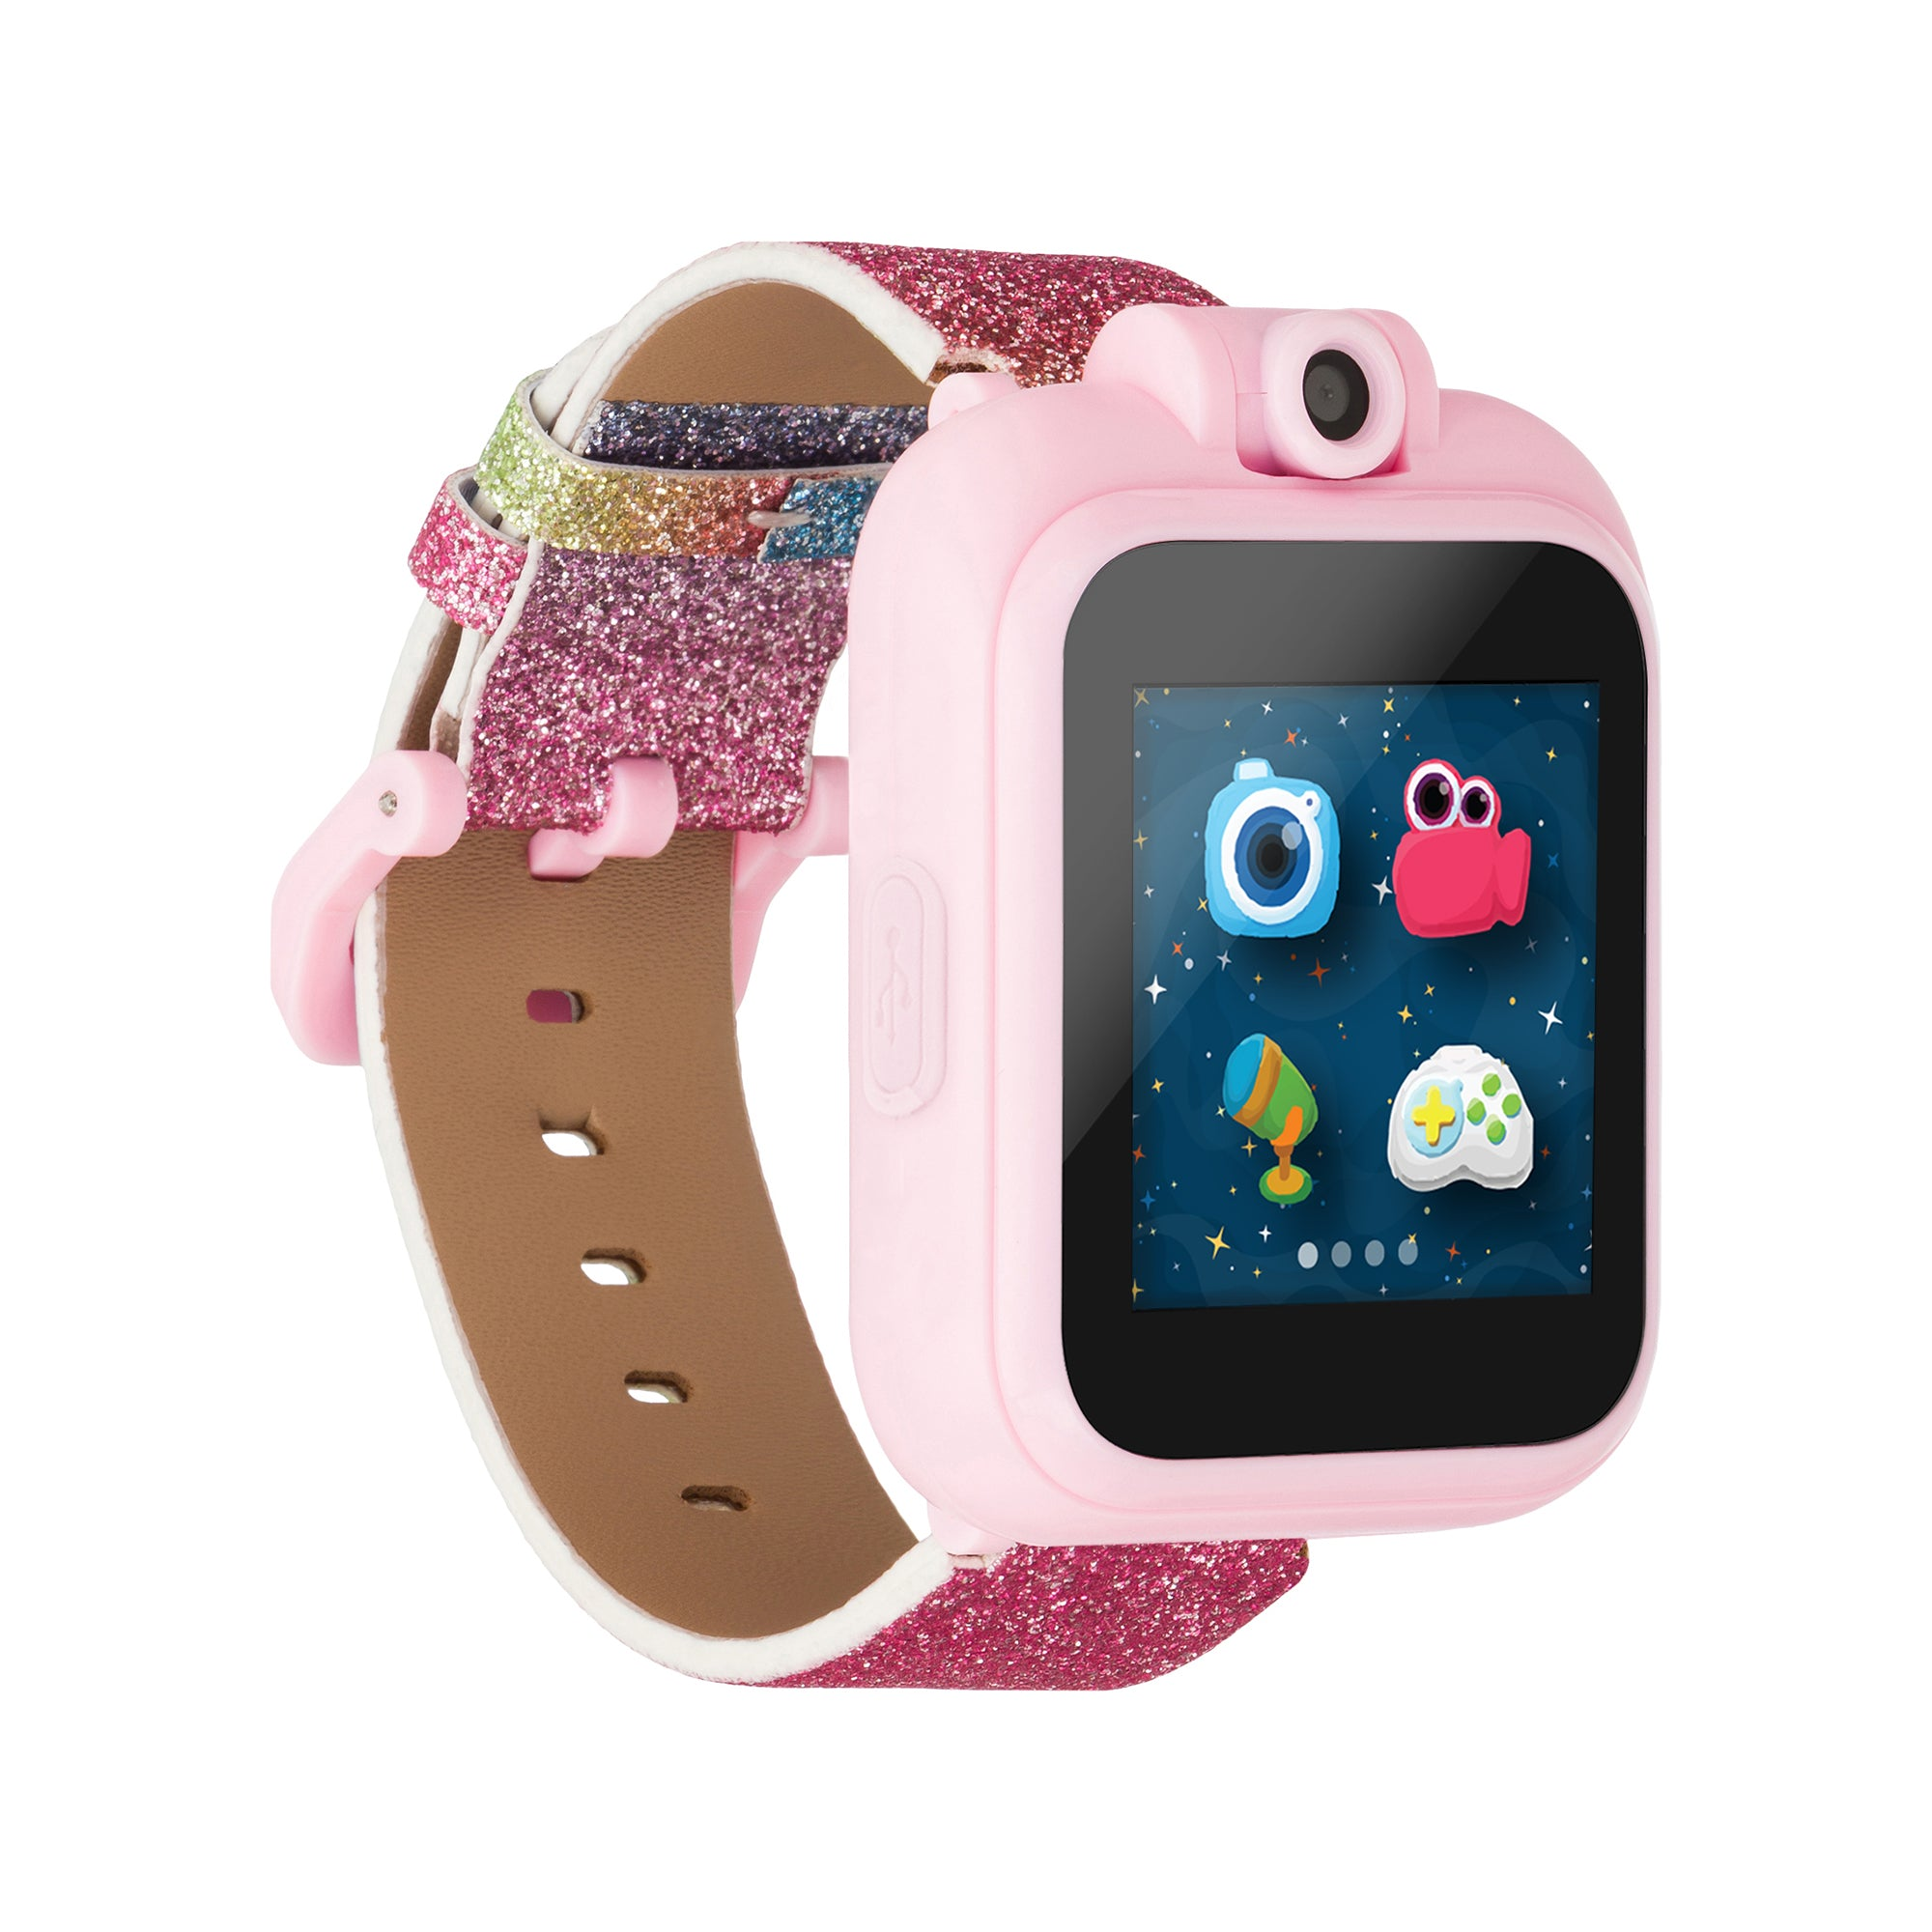 PlayZoom Smartwatch For Kids: Rainbow Glitter Print